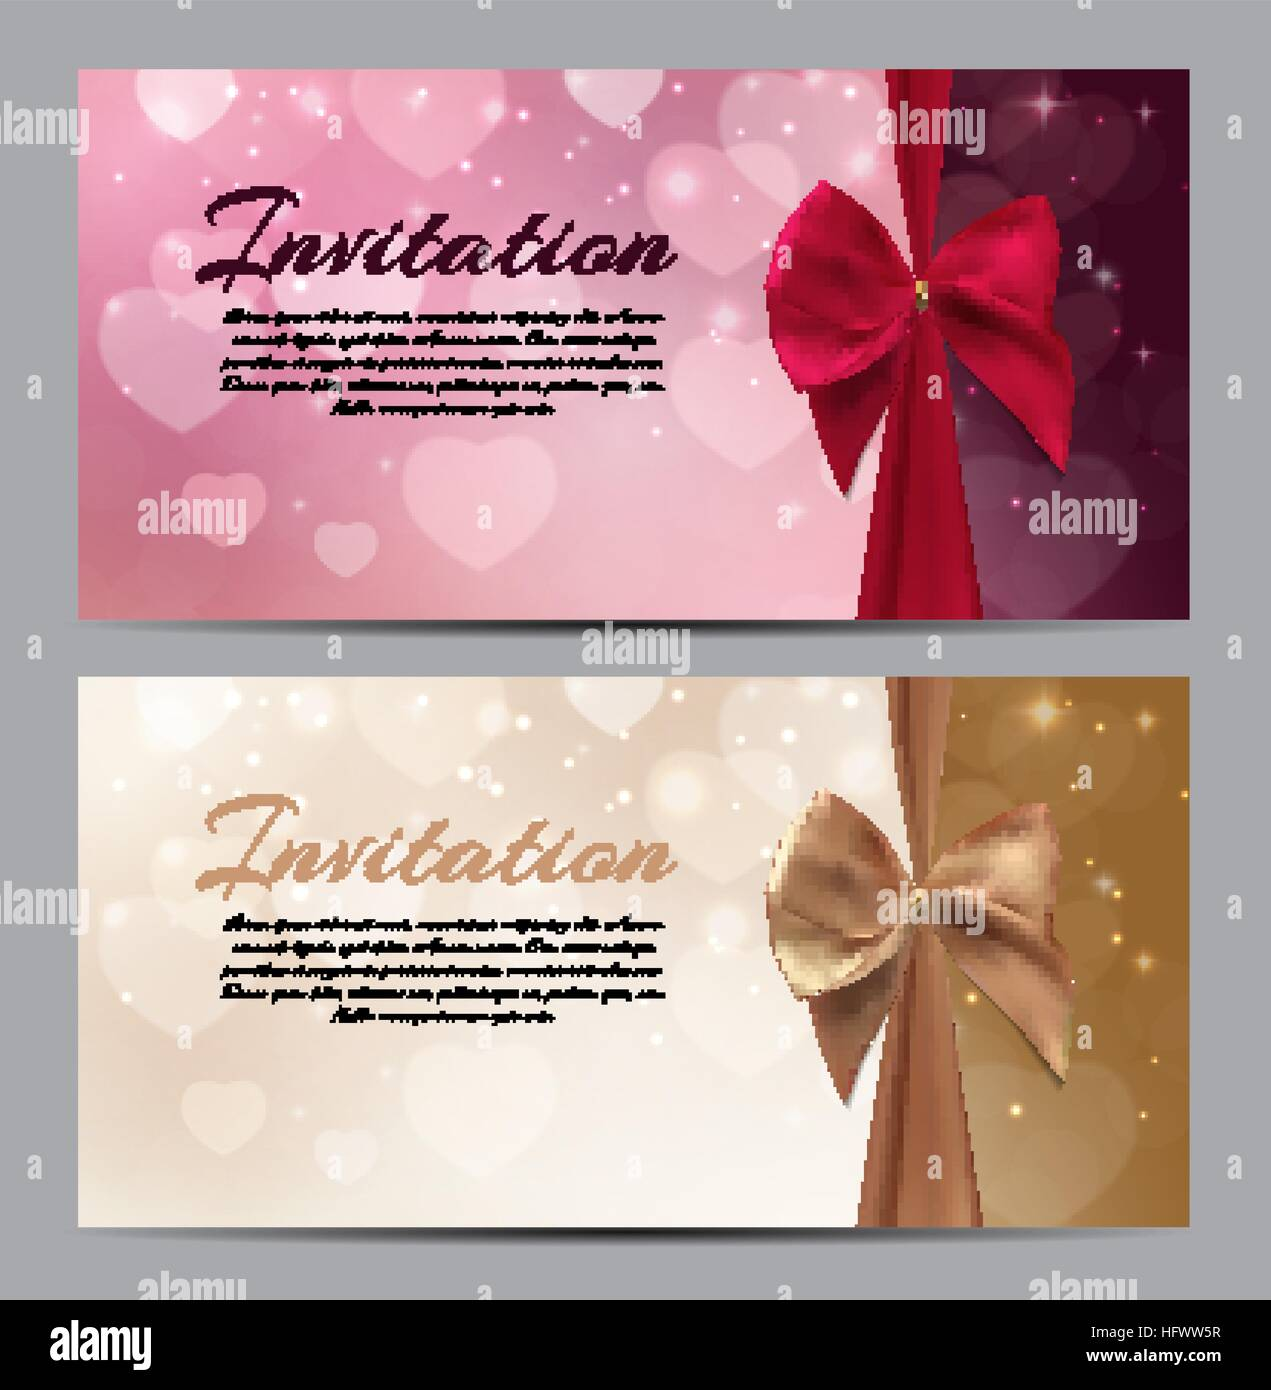 Vintage Gift Voucher Vector Template Stock Photos Vintage Gift